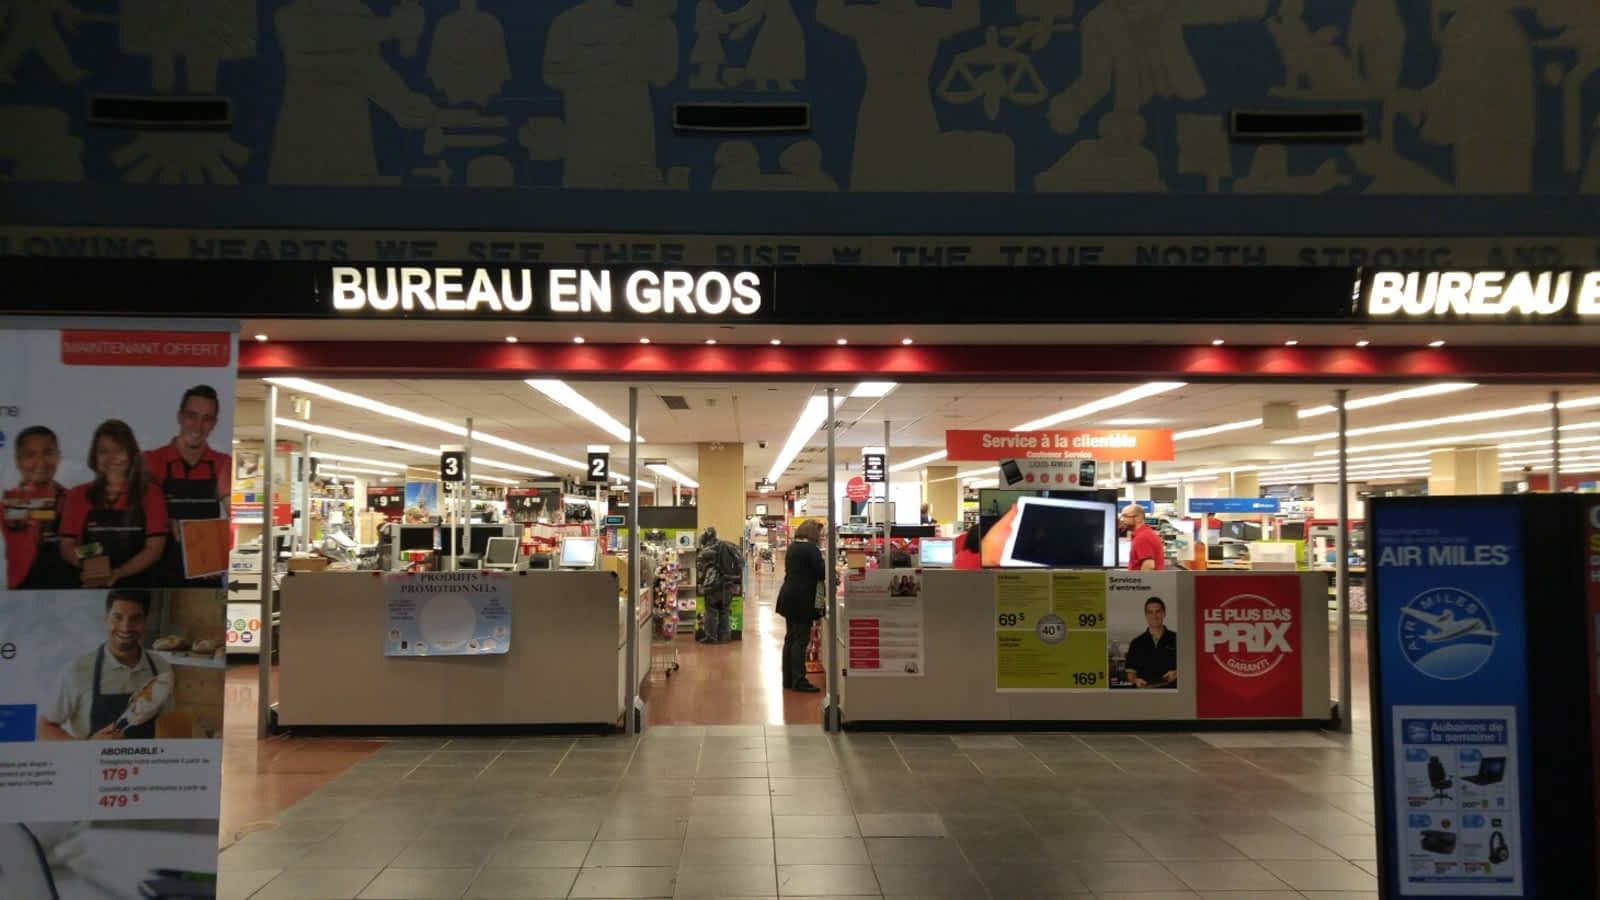 Bureaux en gros quebec: bureau en gros u up to off on tuango. carte